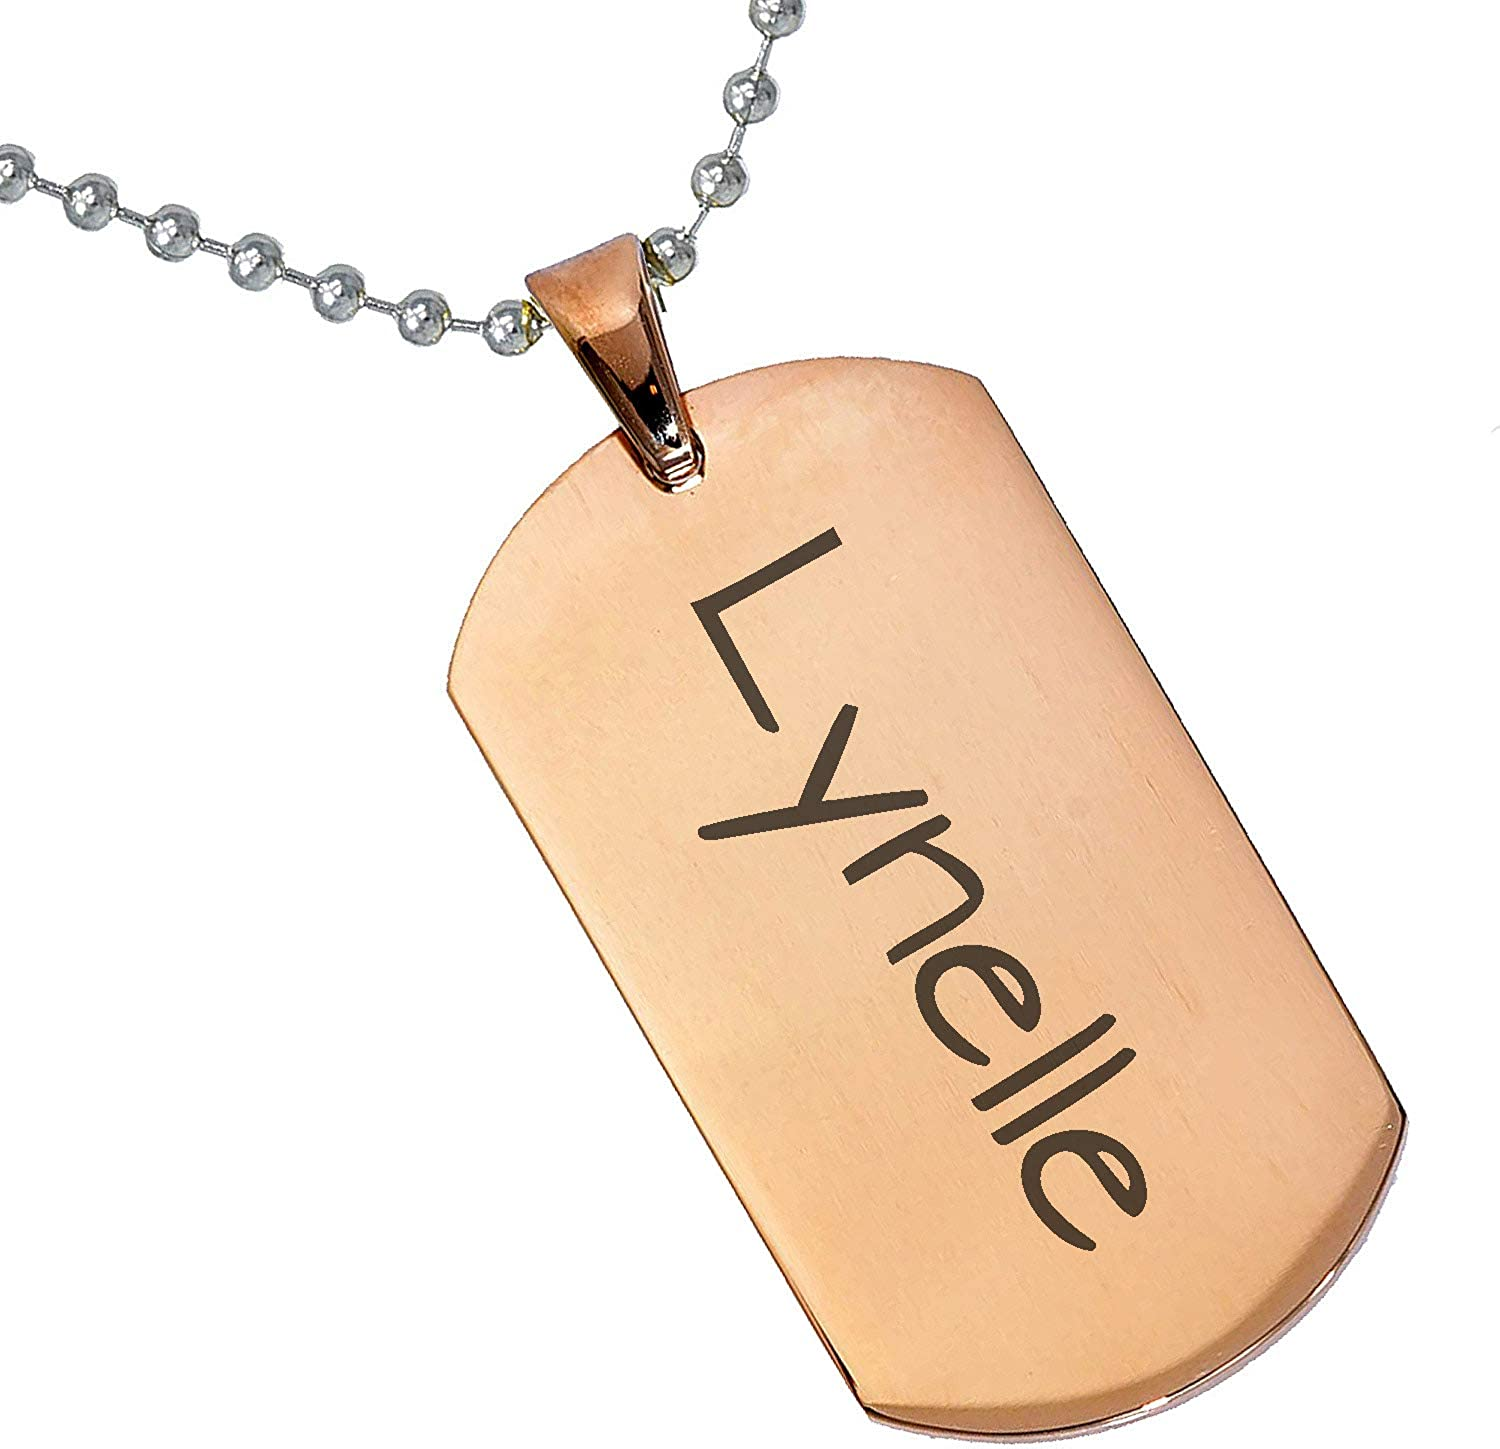 Stainless Steel Silver Gold Black Rose Gold Color Baby Name Lynelle Engraved Personalized Gifts For Son Daughter Boyfriend Girlfriend Initial Customizable Pendant Necklace Dog Tags 24 Ball Chain